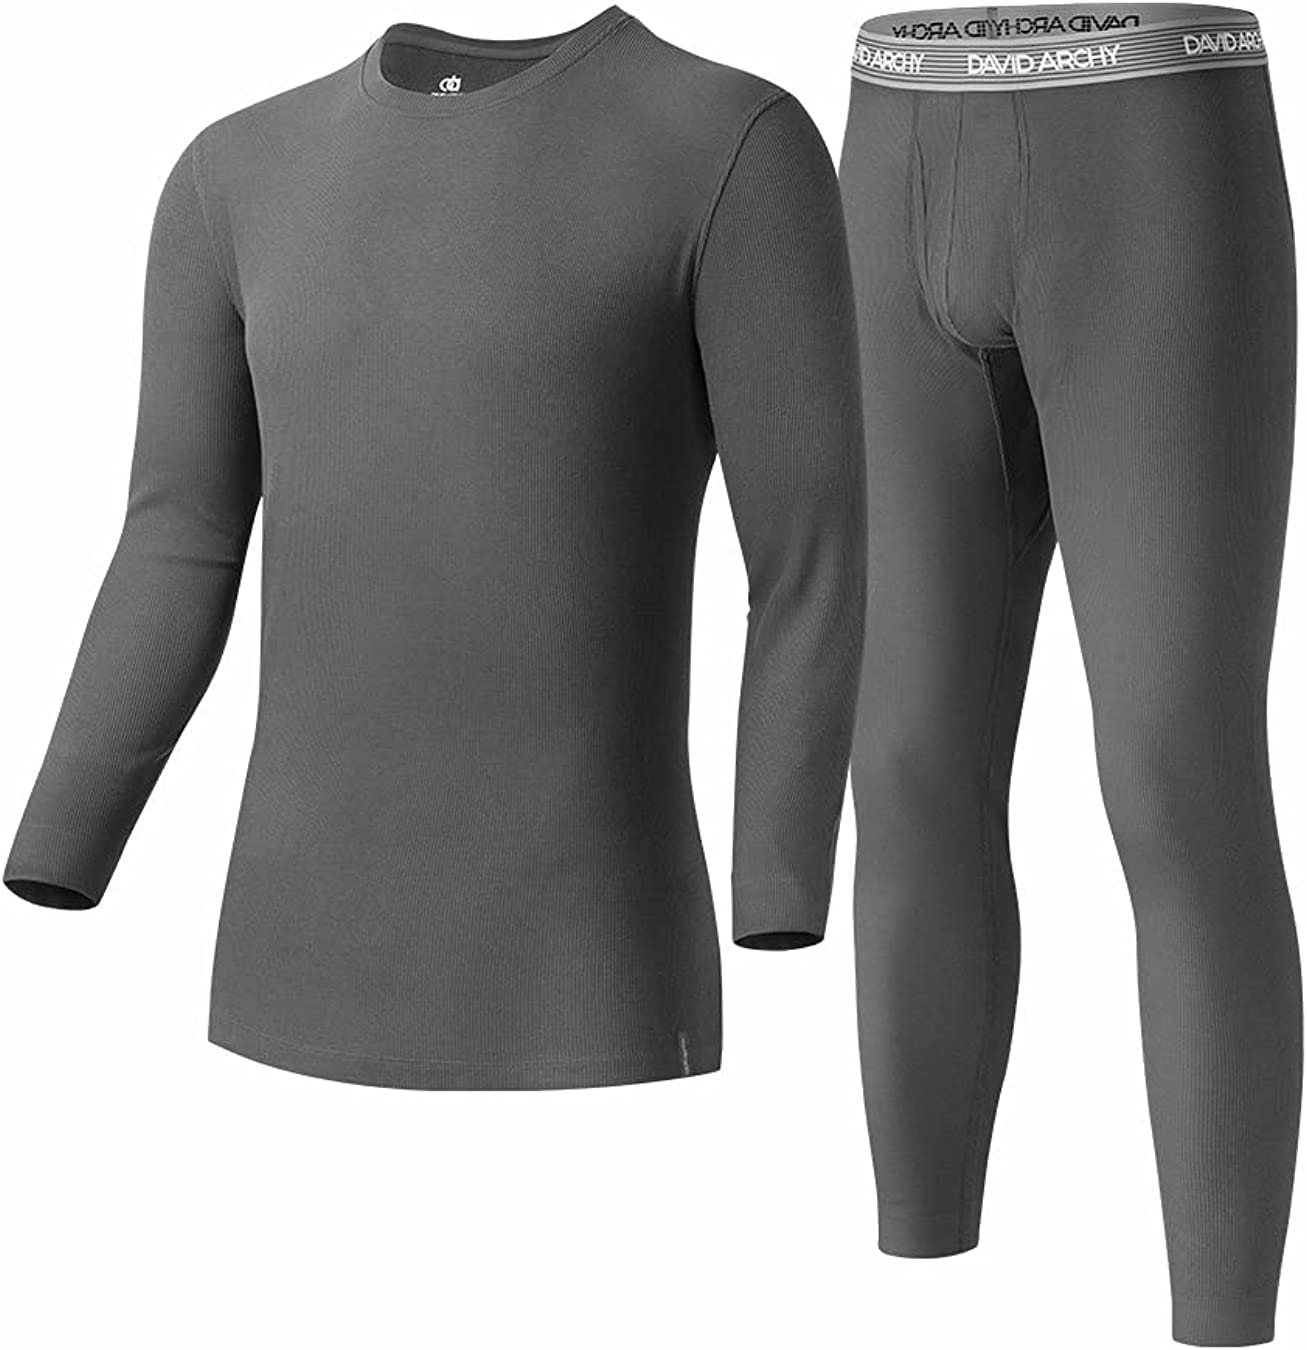 DAVID ARCHY Men's 2 Pack Soft Cotton Thermal Pants Rib Stretchy Base Layer Thermal Underwear Bottoms Long Johns Leggings